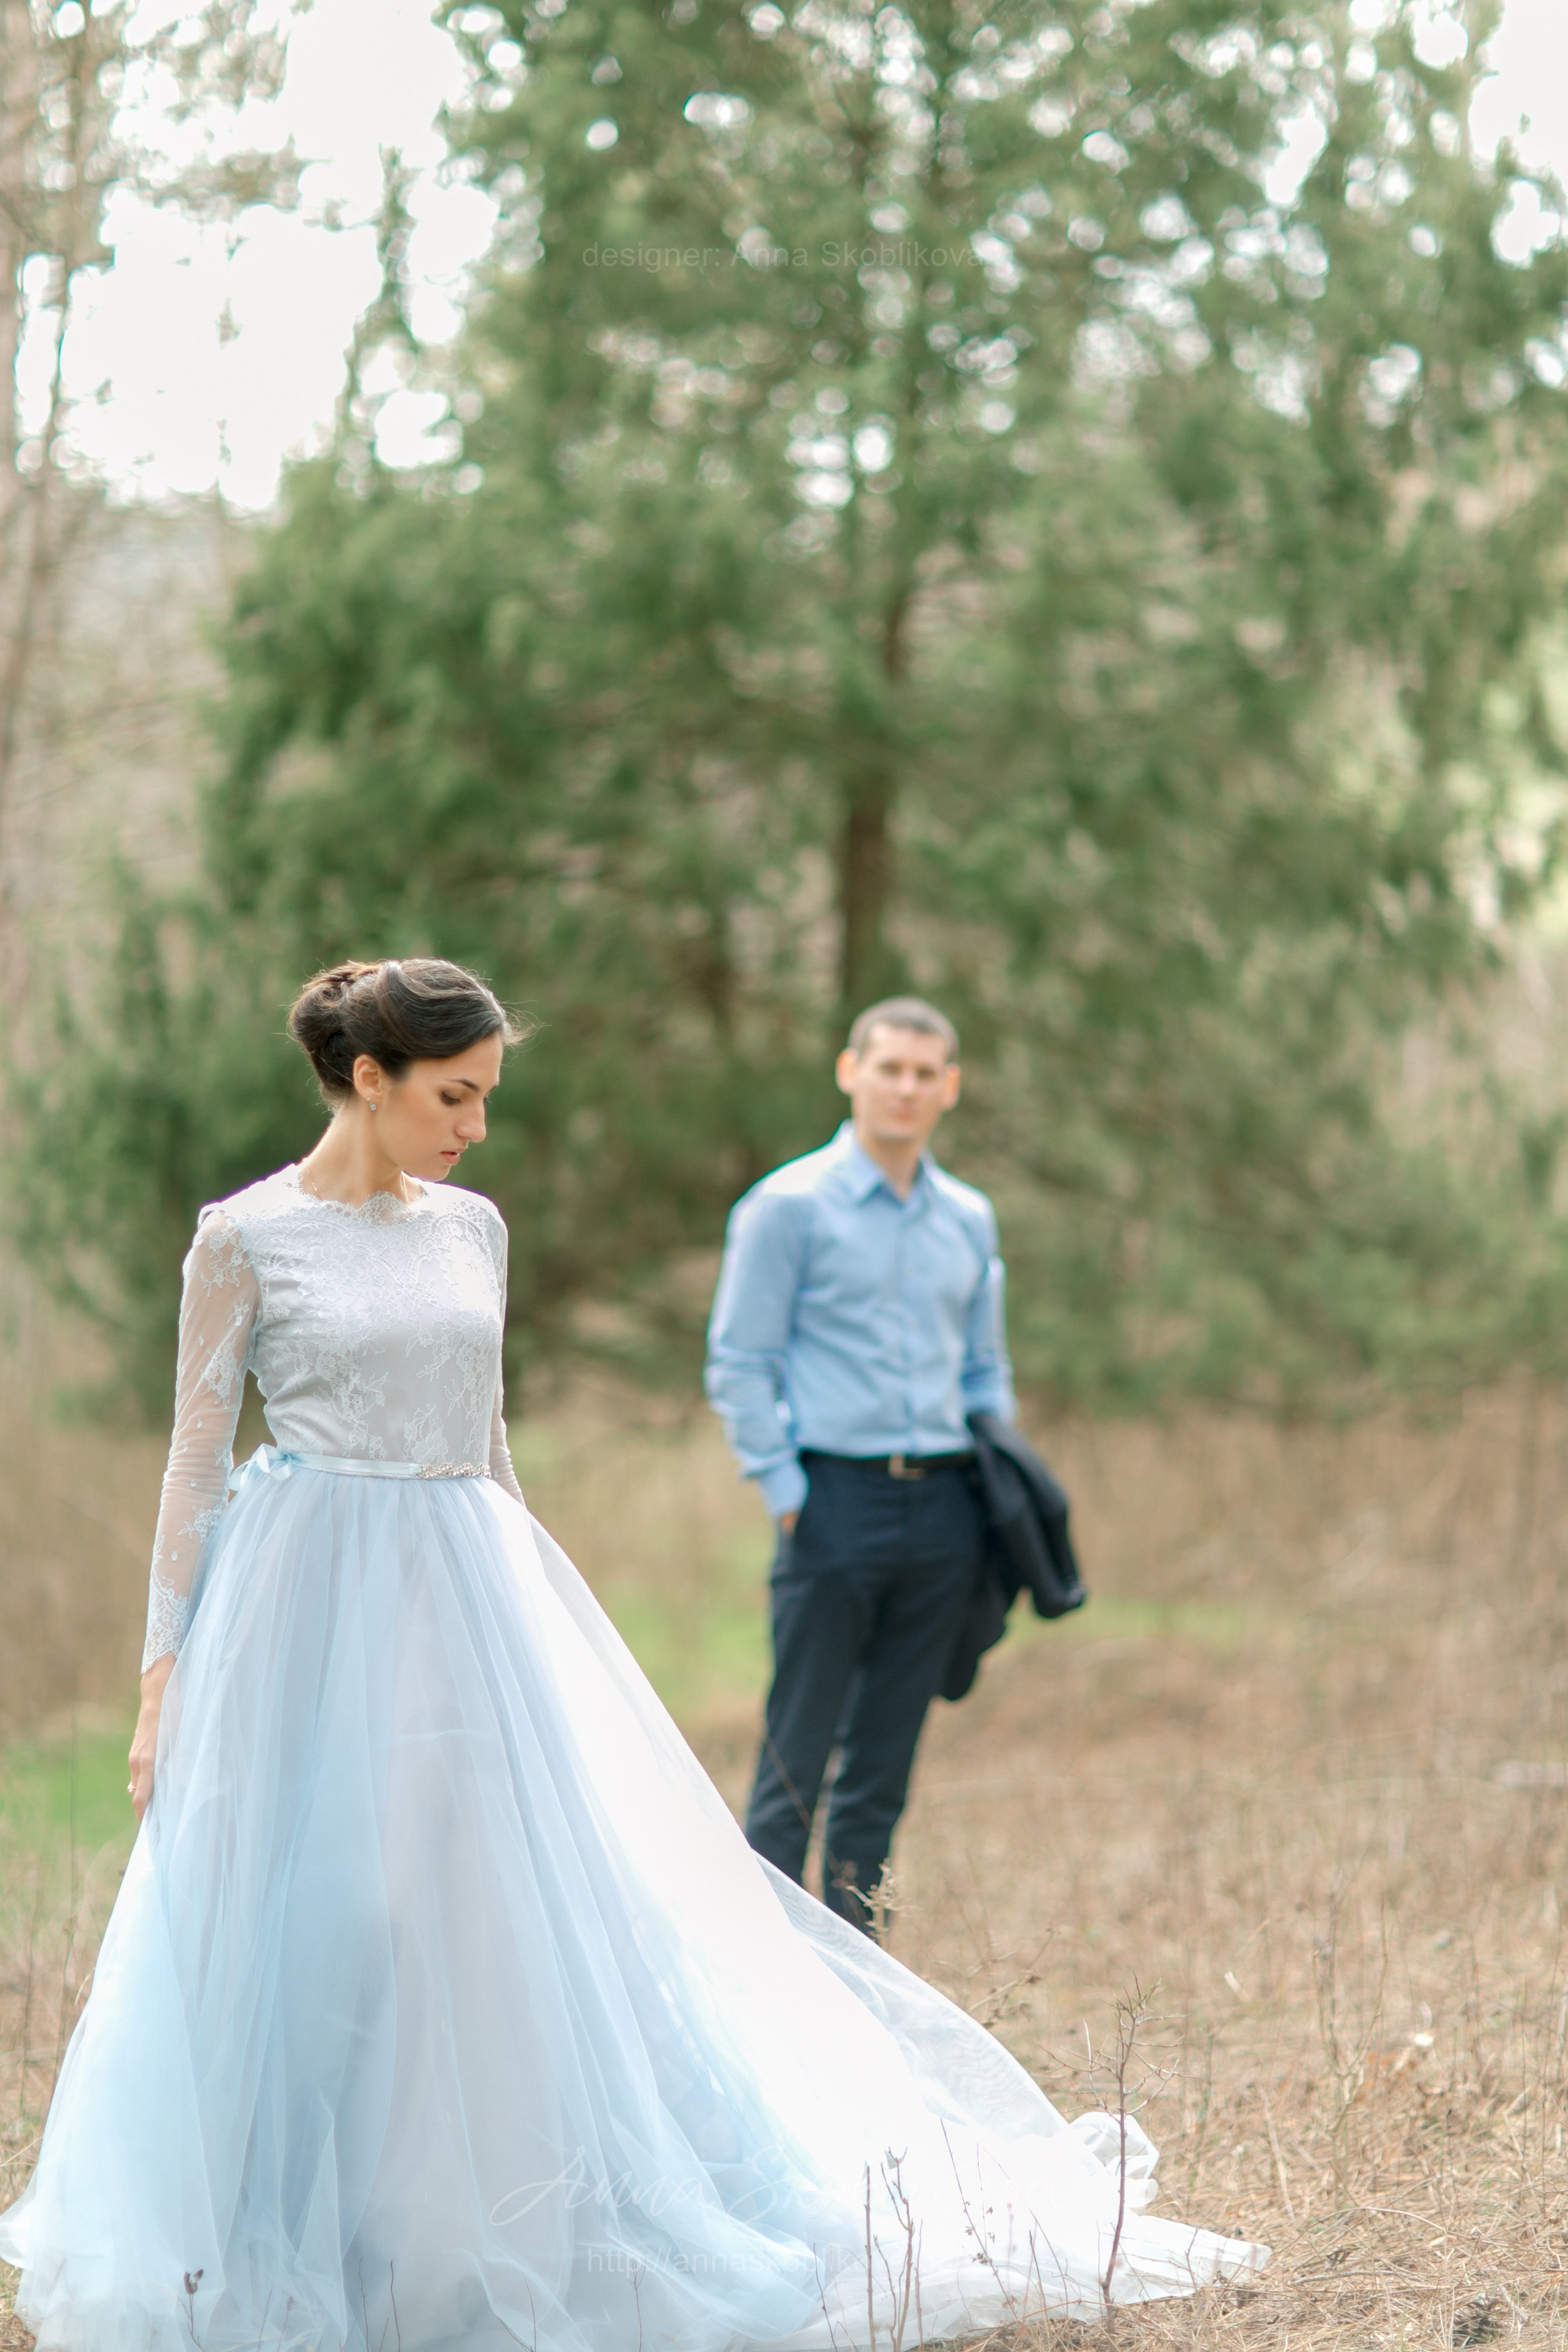 Light Blue Wedding Gown | Anna Skoblikova - Wedding Dresses ...